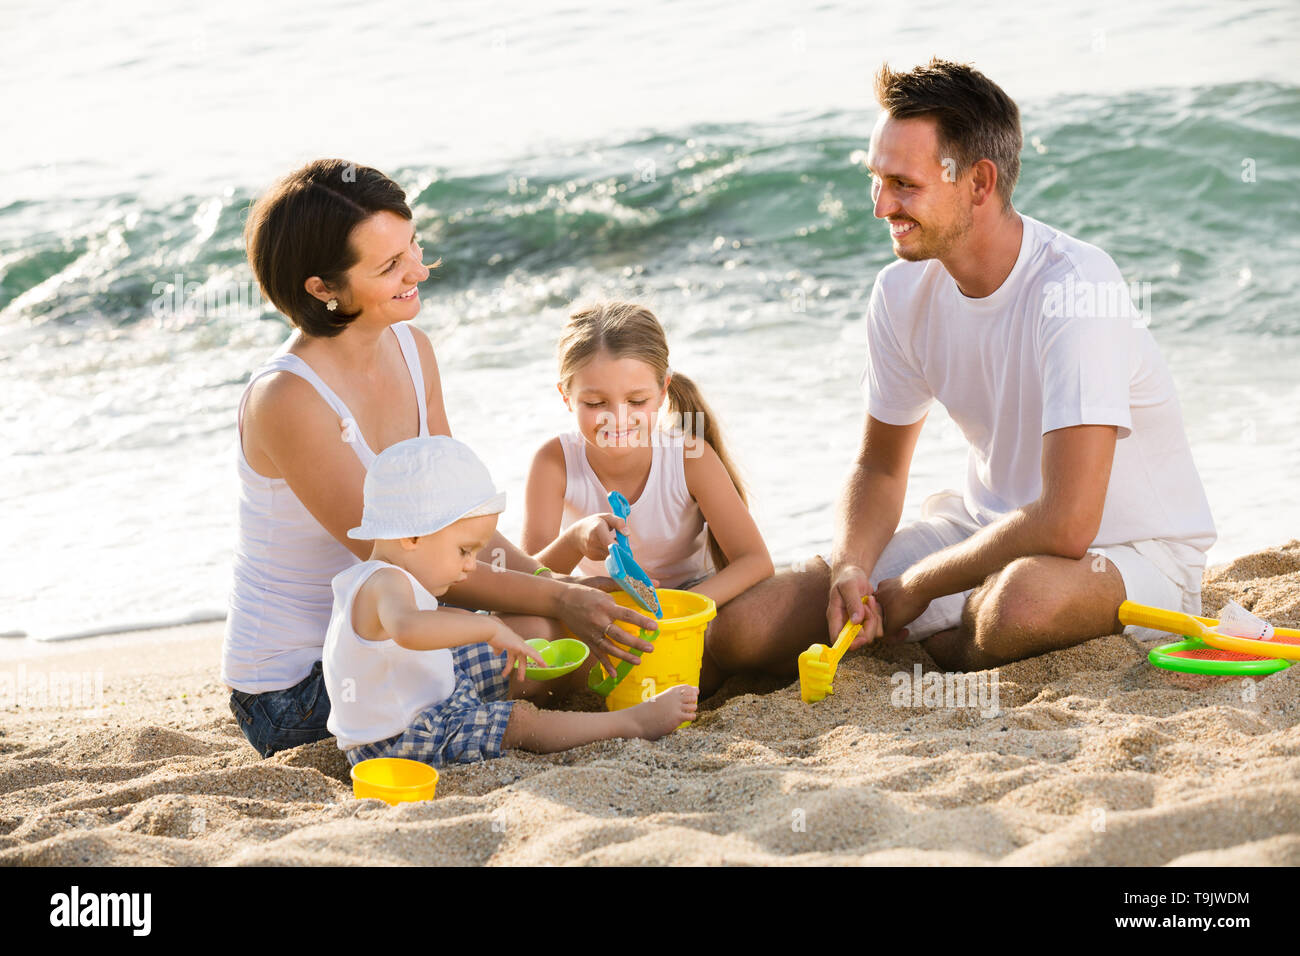 Smiling man and woman with two children playing with plastic bucket and scoops at beach - Stock Image